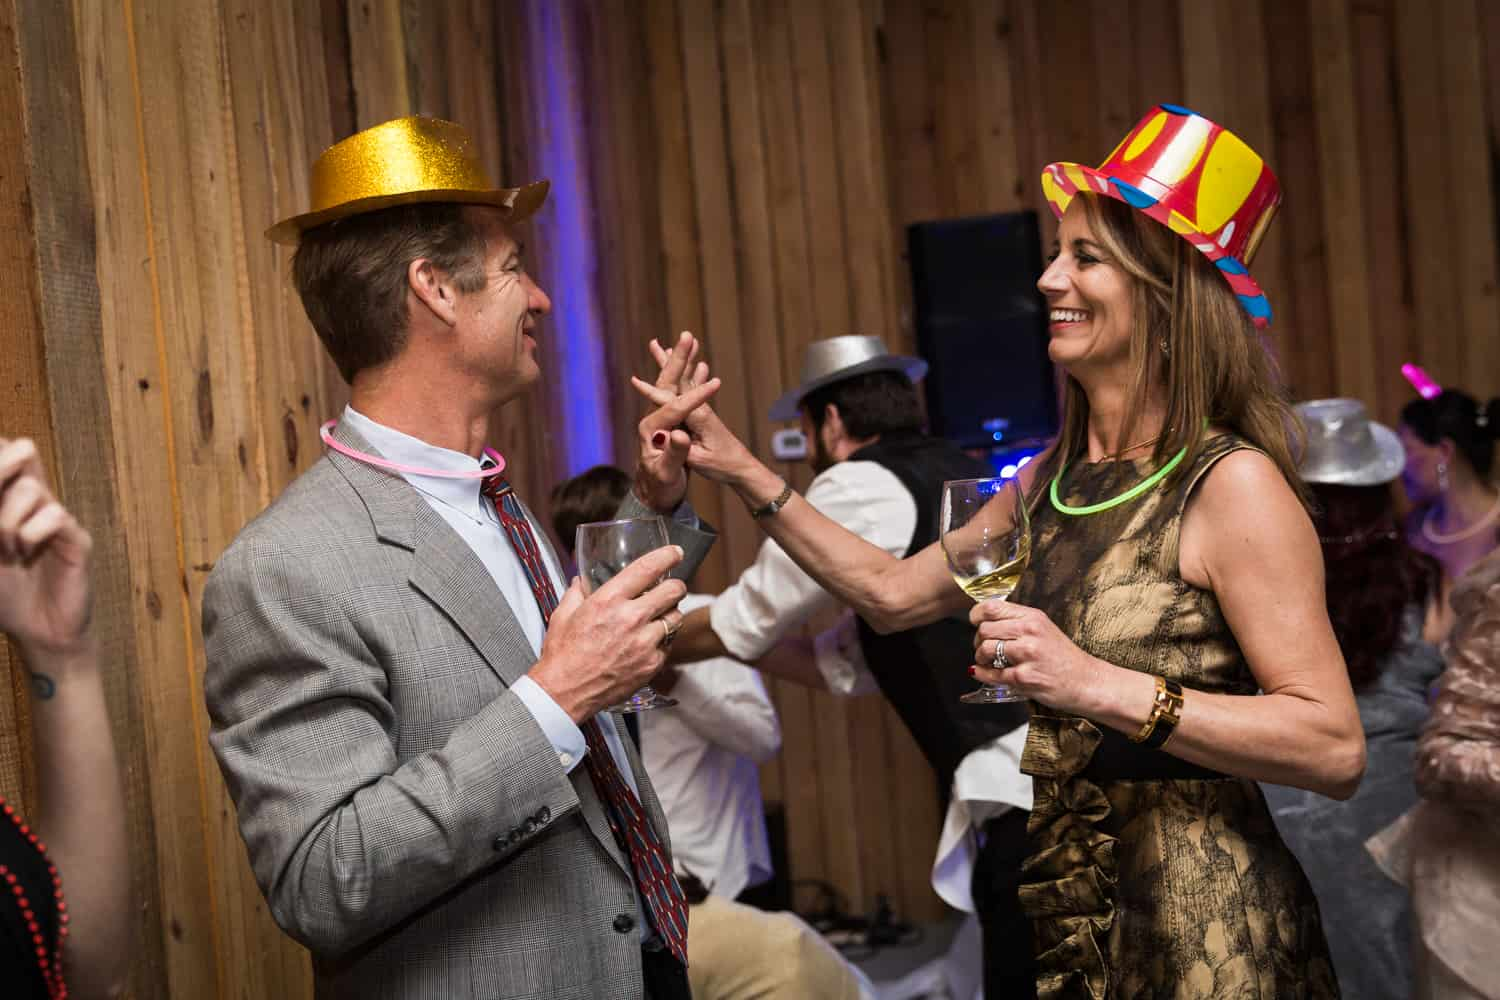 Couple wearing party hats and dancing during Florida wedding reception